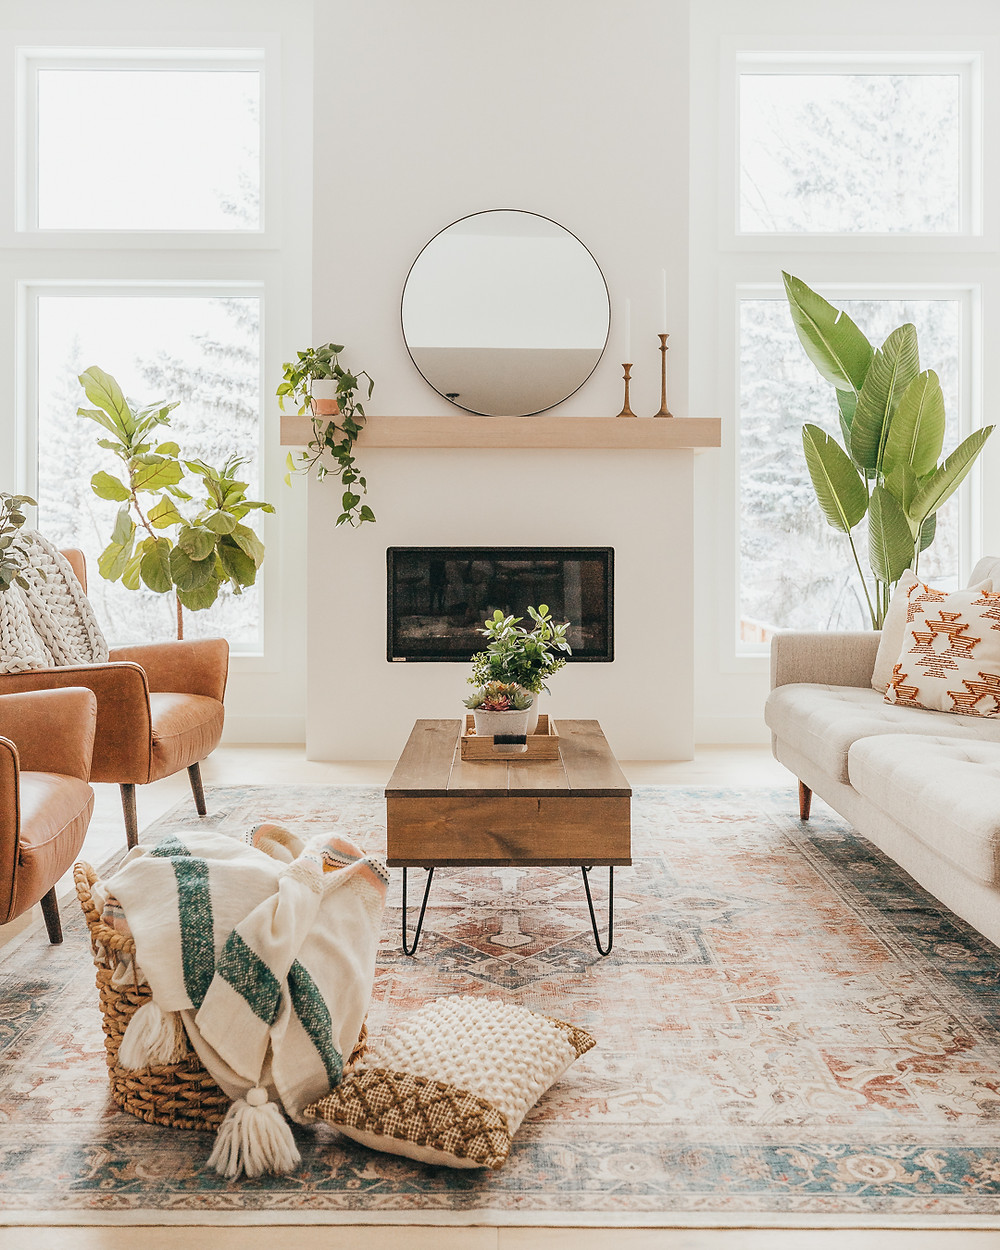 Natural light and two windows on each side of fireplace wood mantle with black circle mirror two candlesticks plant bird of paradise fiddle leaf fig plant rust arm chairs area rug wood and black accent coffee table cream color sofa with aztec pattern throw pillow basket on floor with throw blanket and pillow